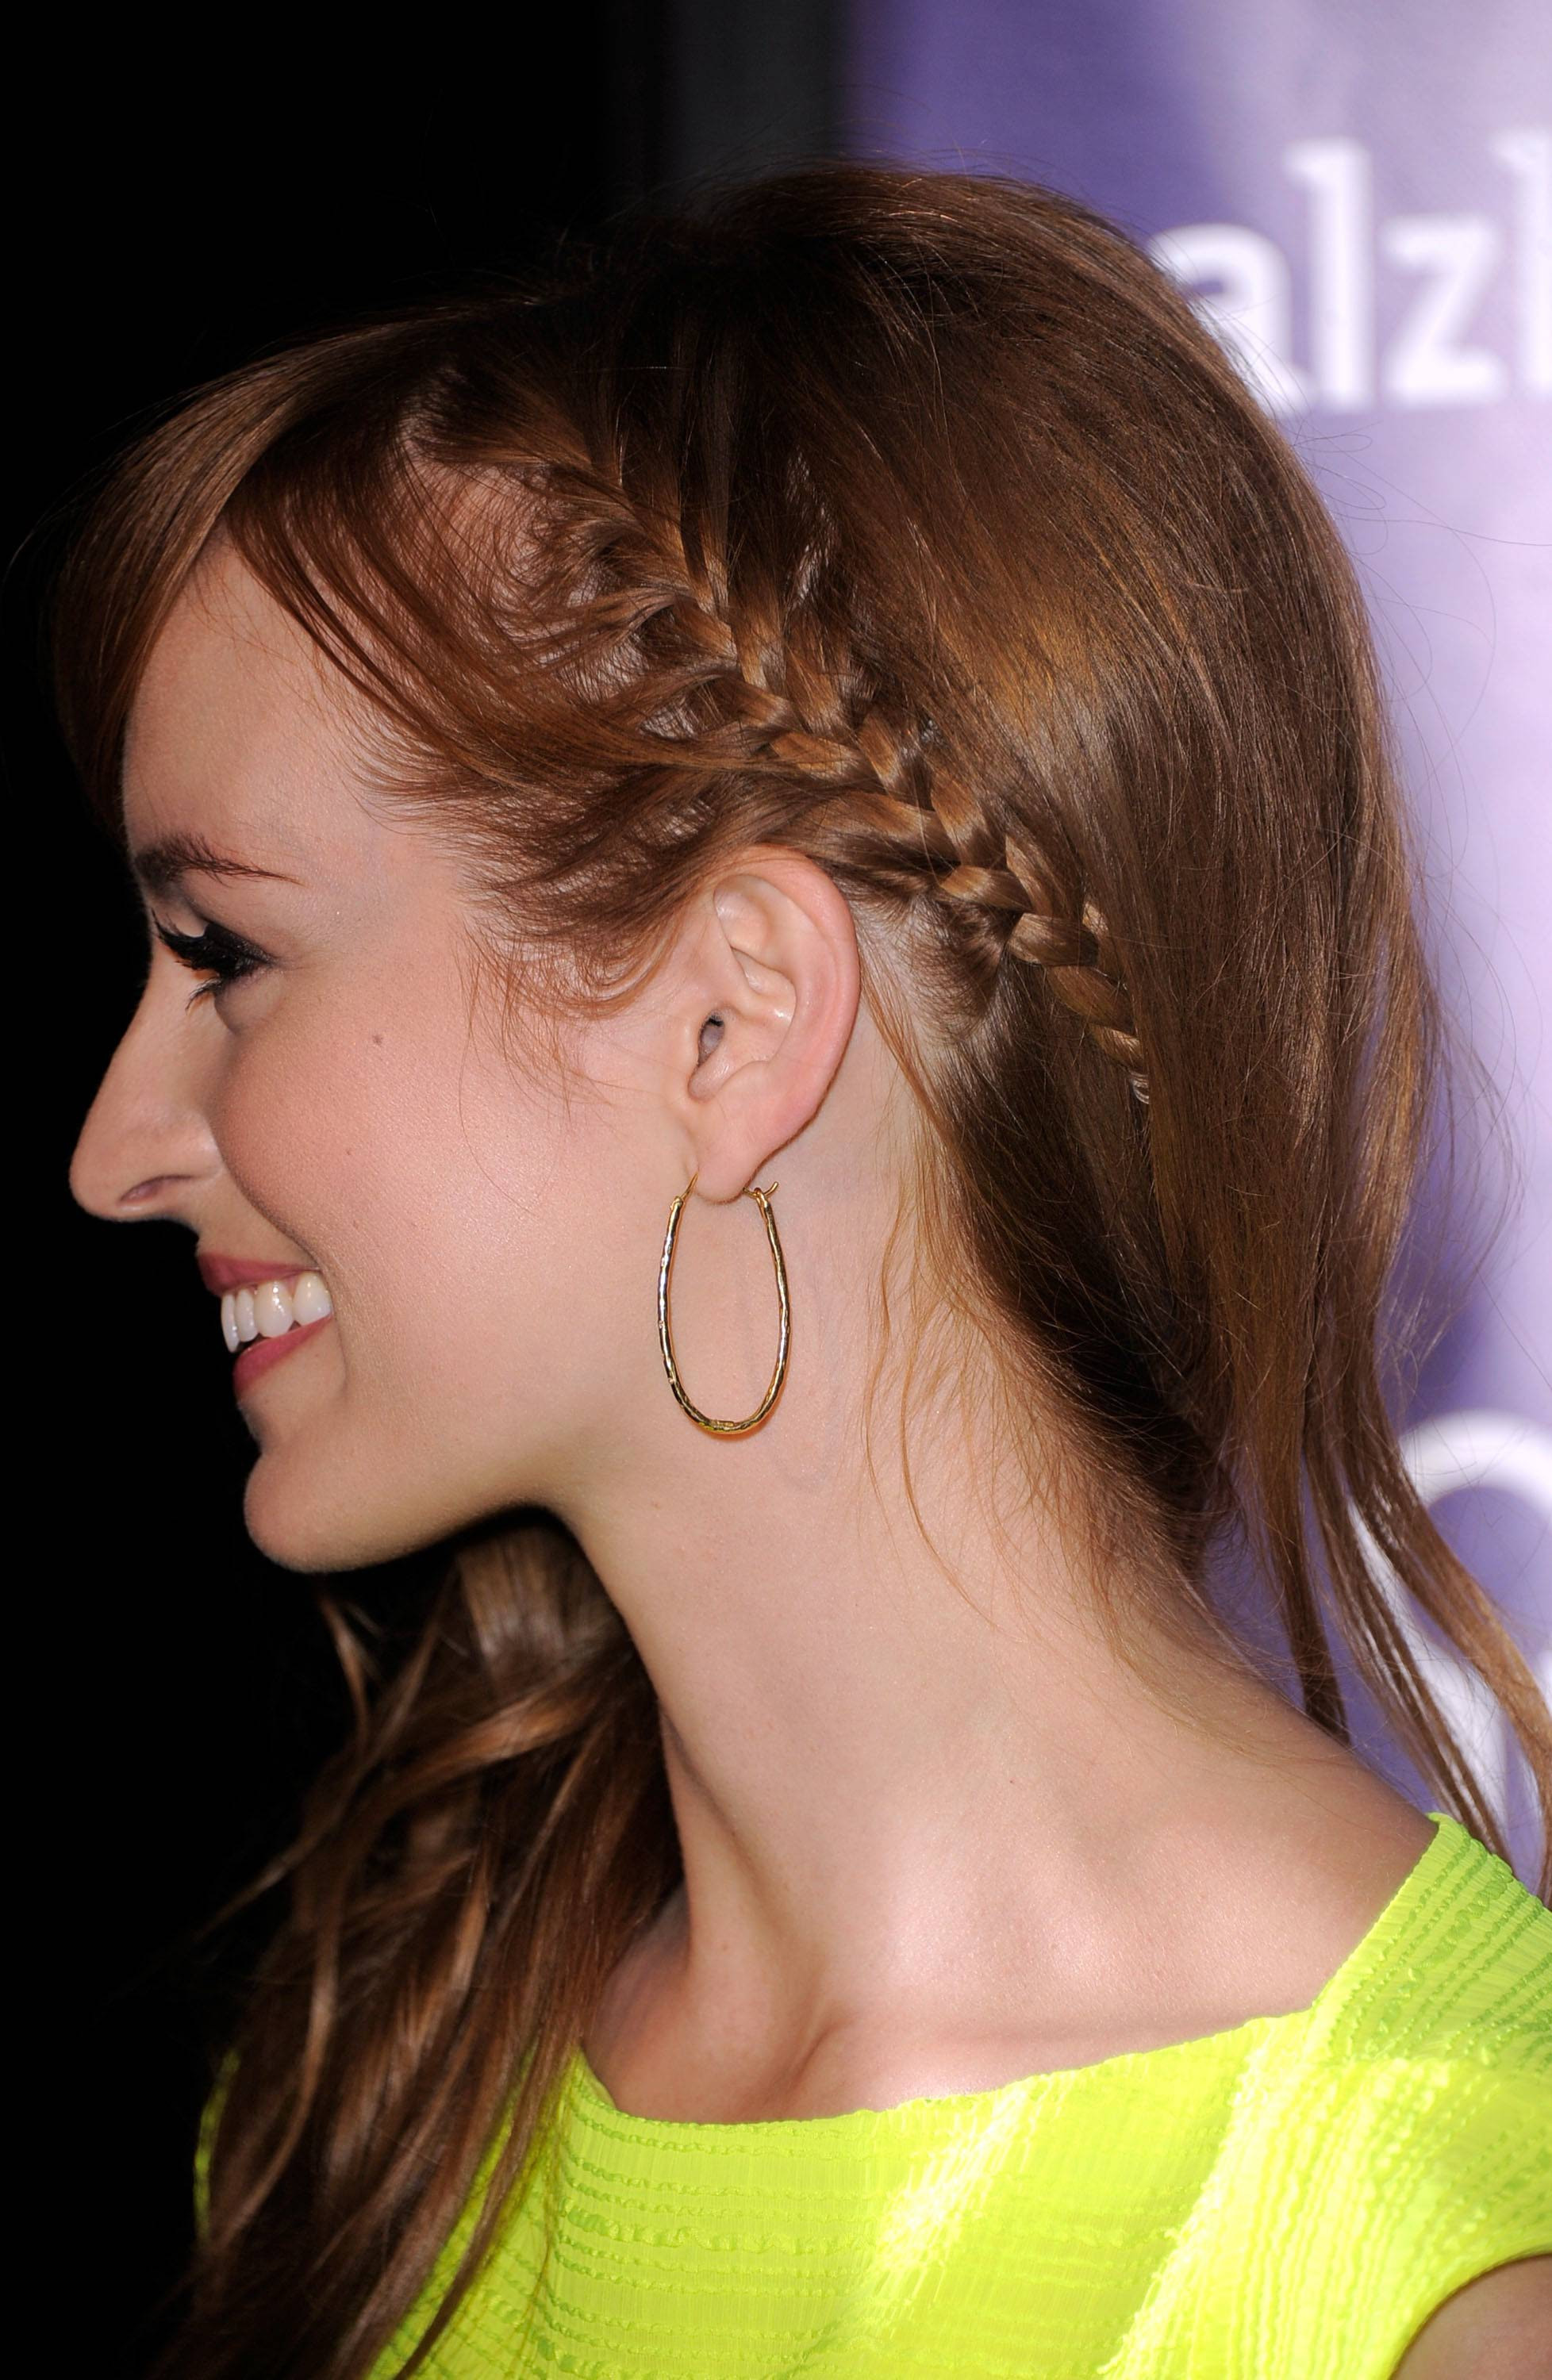 Best ideas about Cute Hairstyles . Save or Pin 30 Cute Braided Hairstyles Style Arena Now.